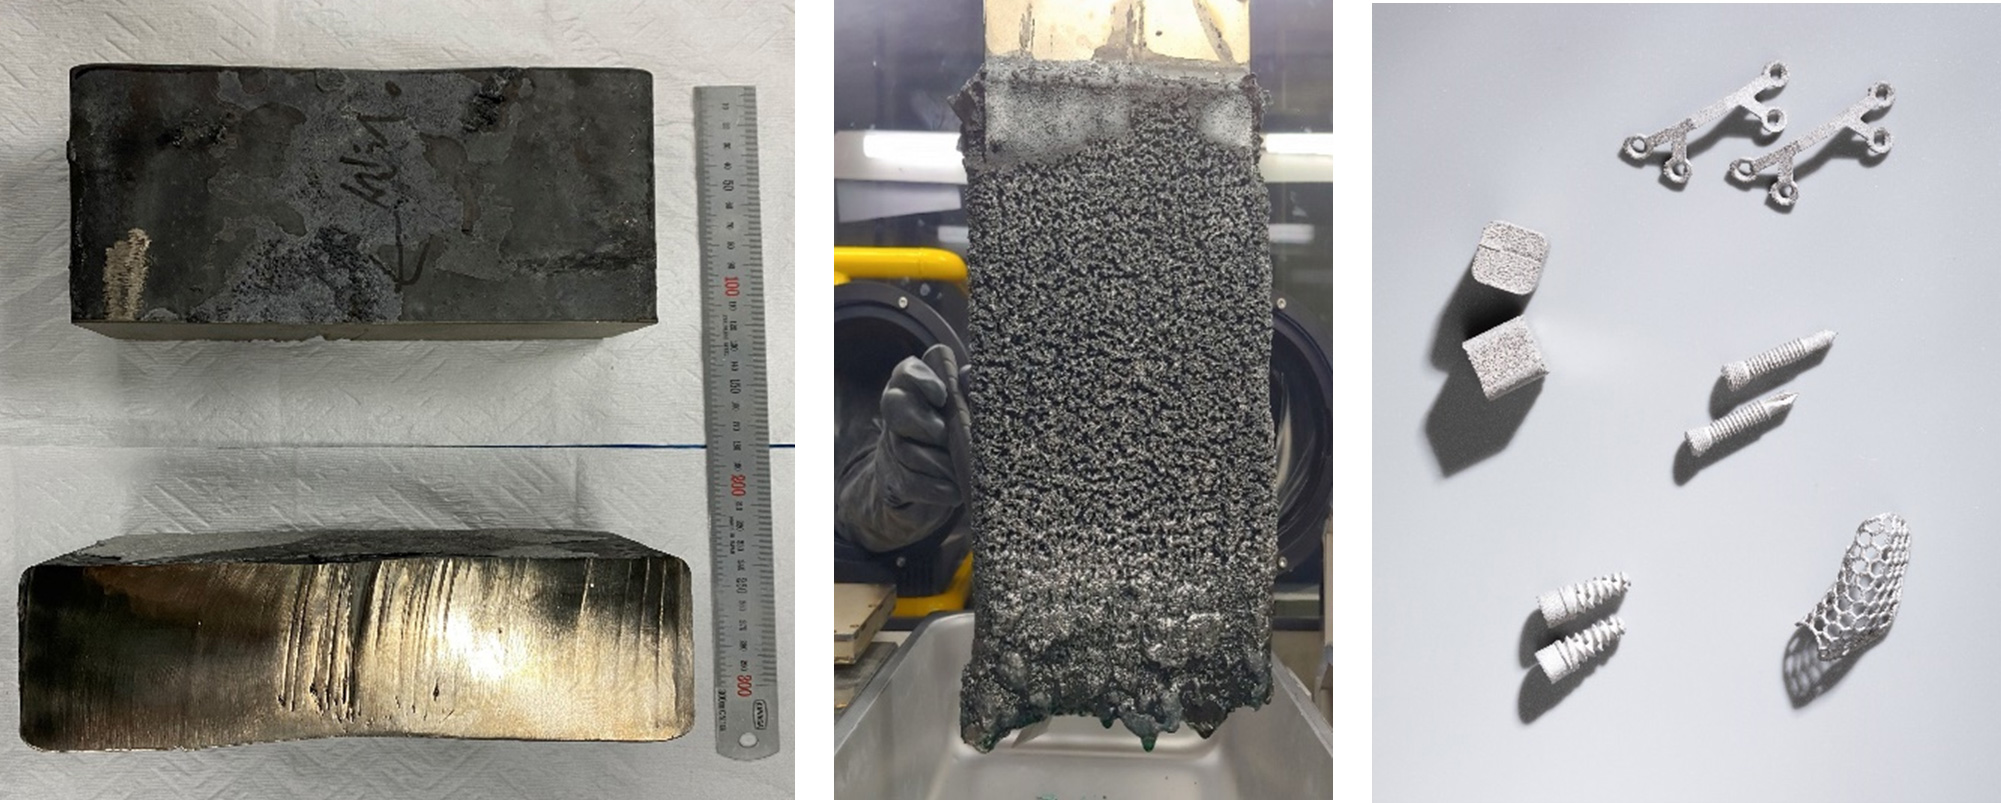 ASM Titanium Powder Approved for 3D Printing  by Korean Advanced Manufacturing Company